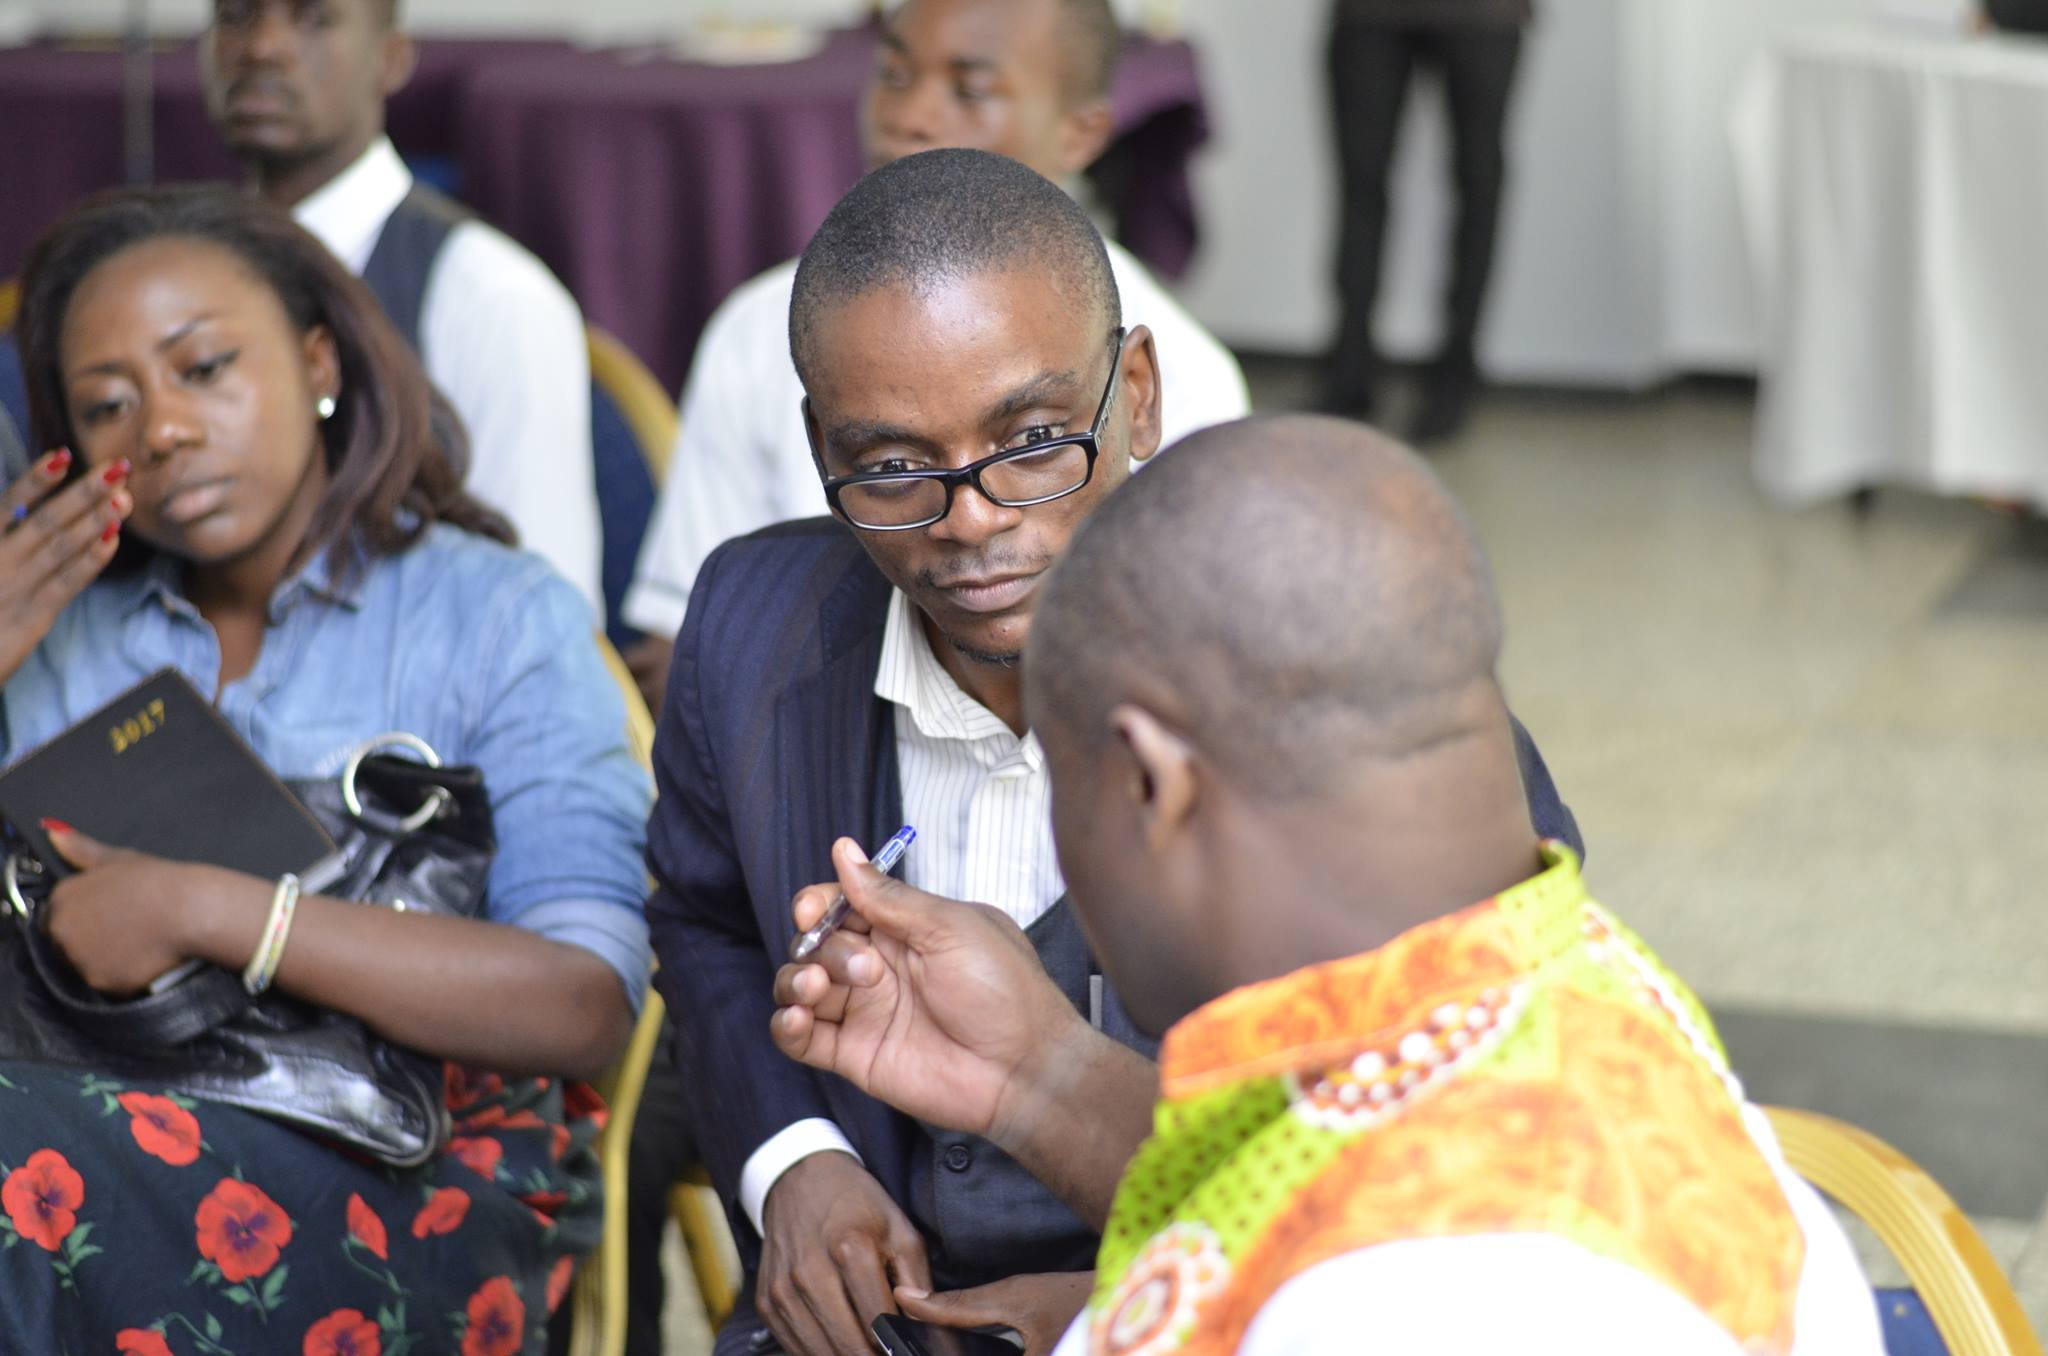 Discussions with an entrepreneur right after my presentation